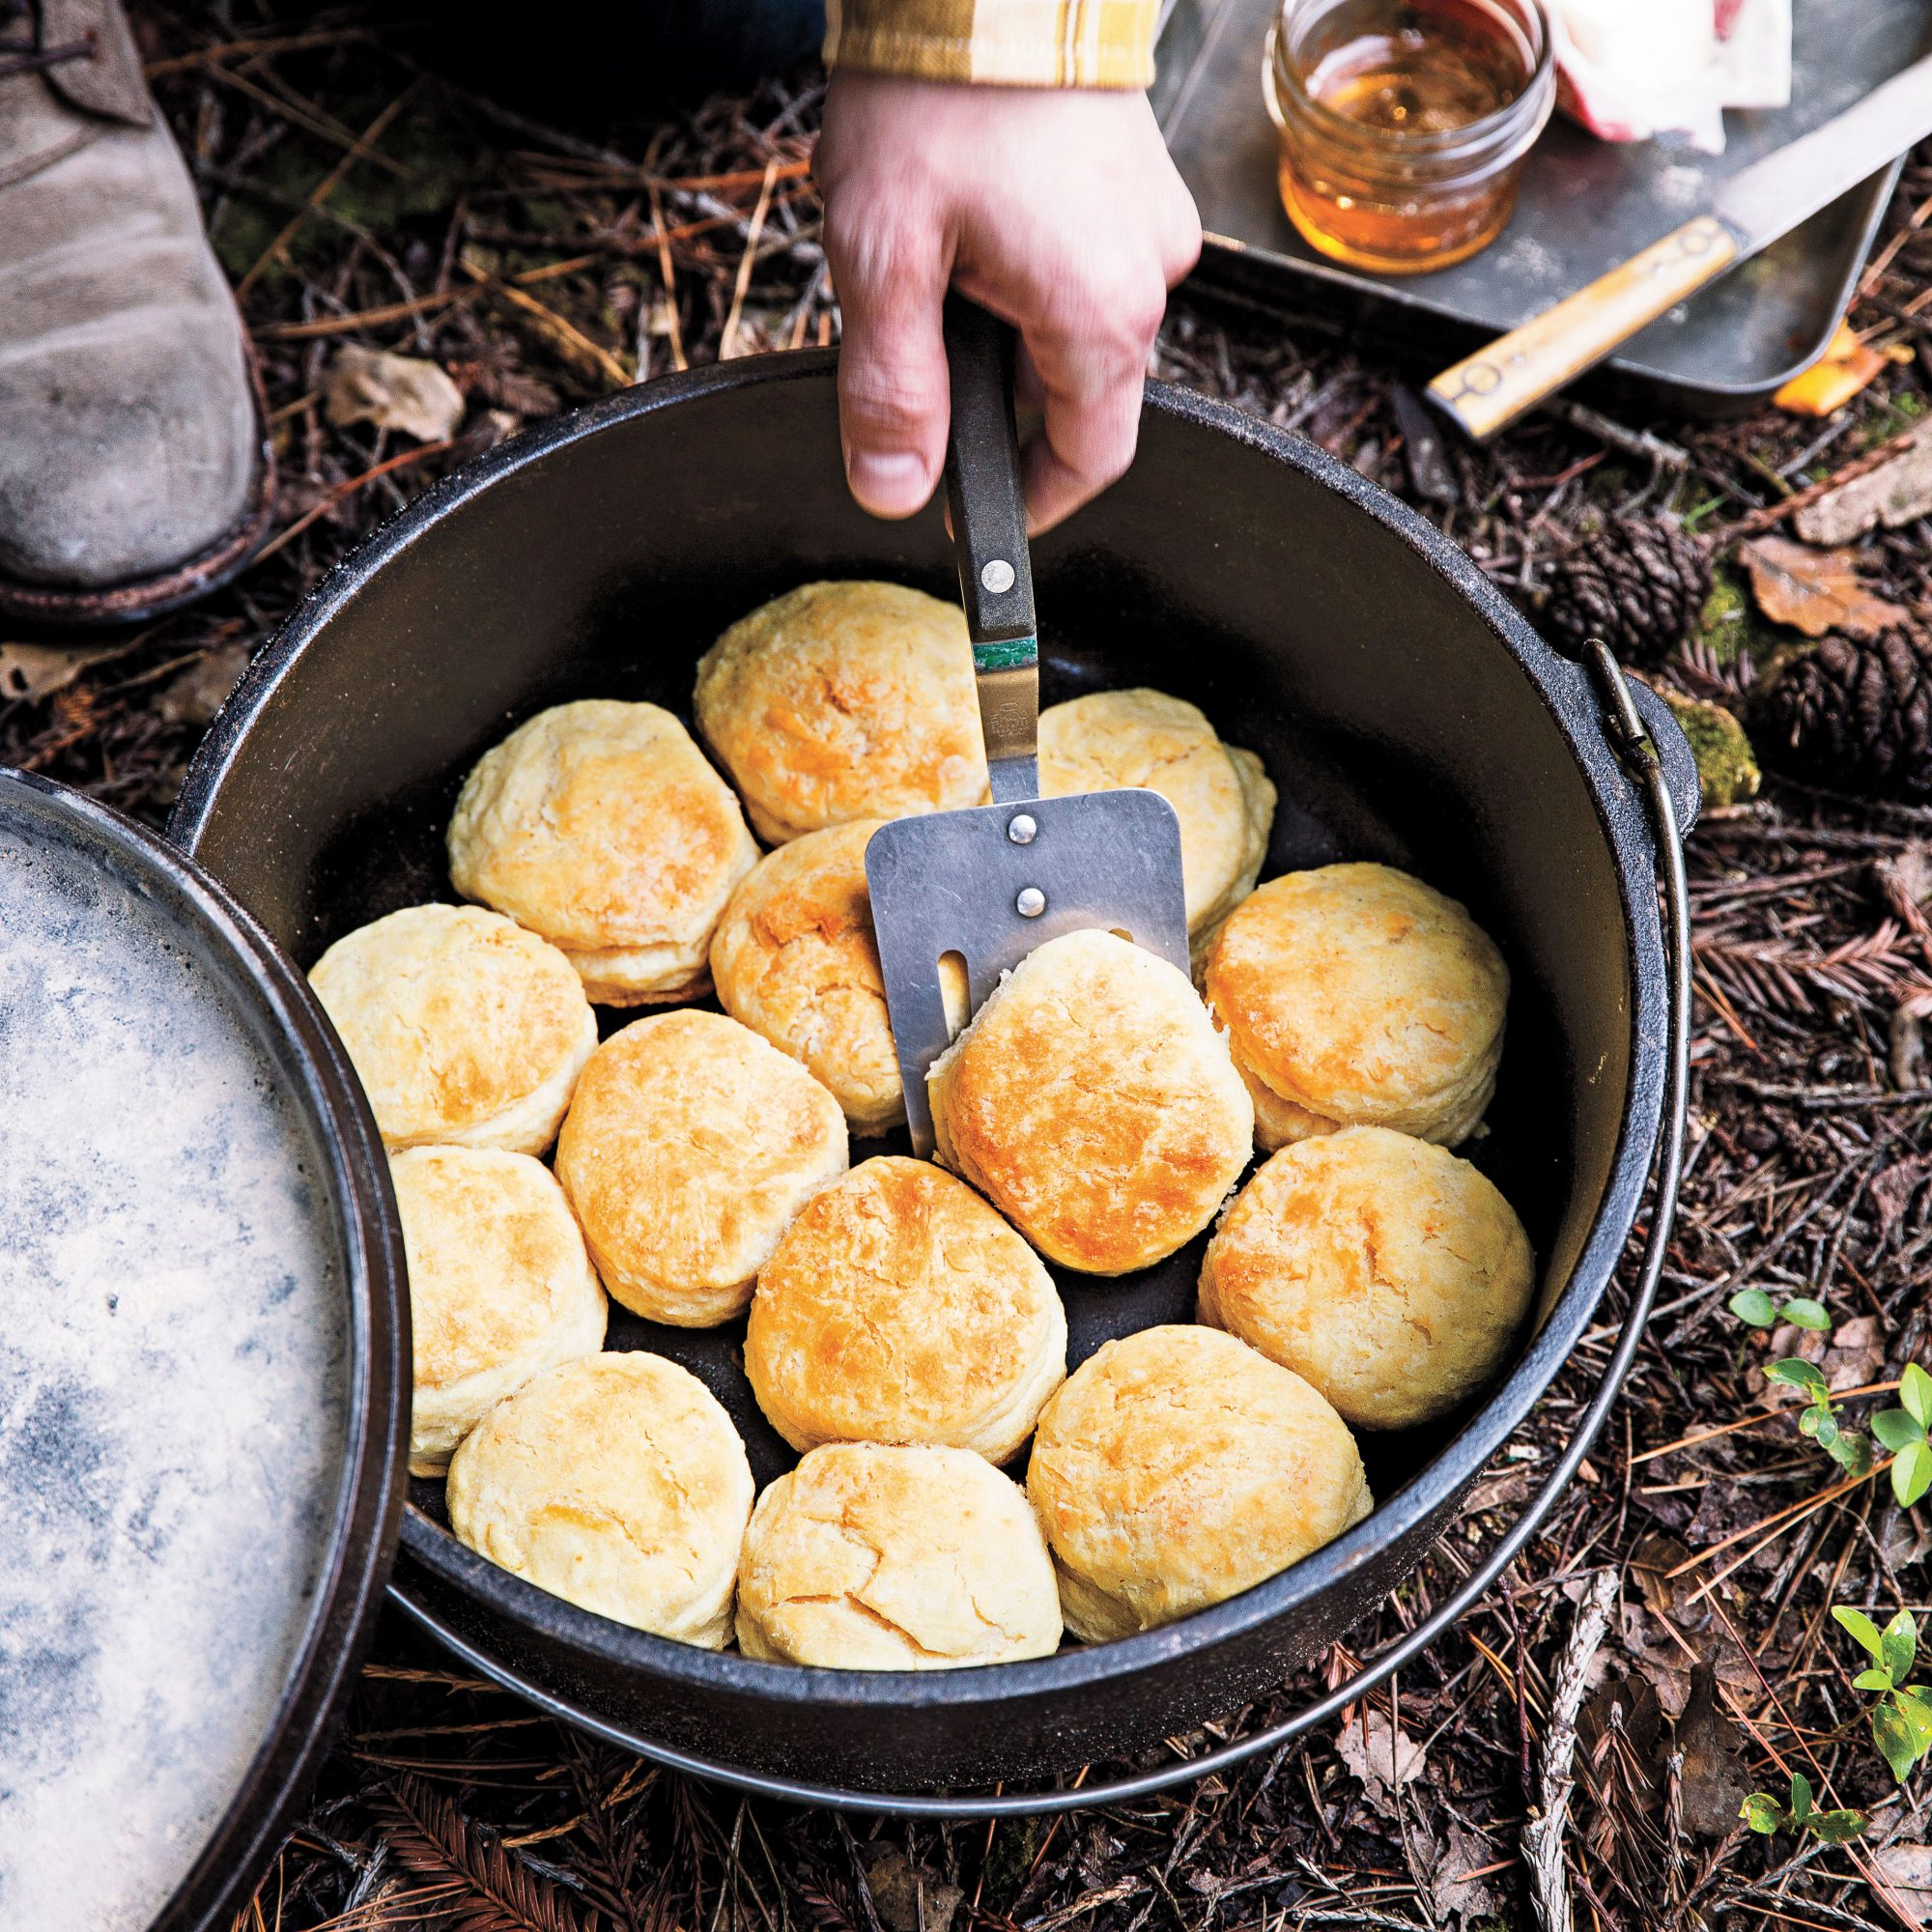 Mark Klever's Dutch Oven Biscuits